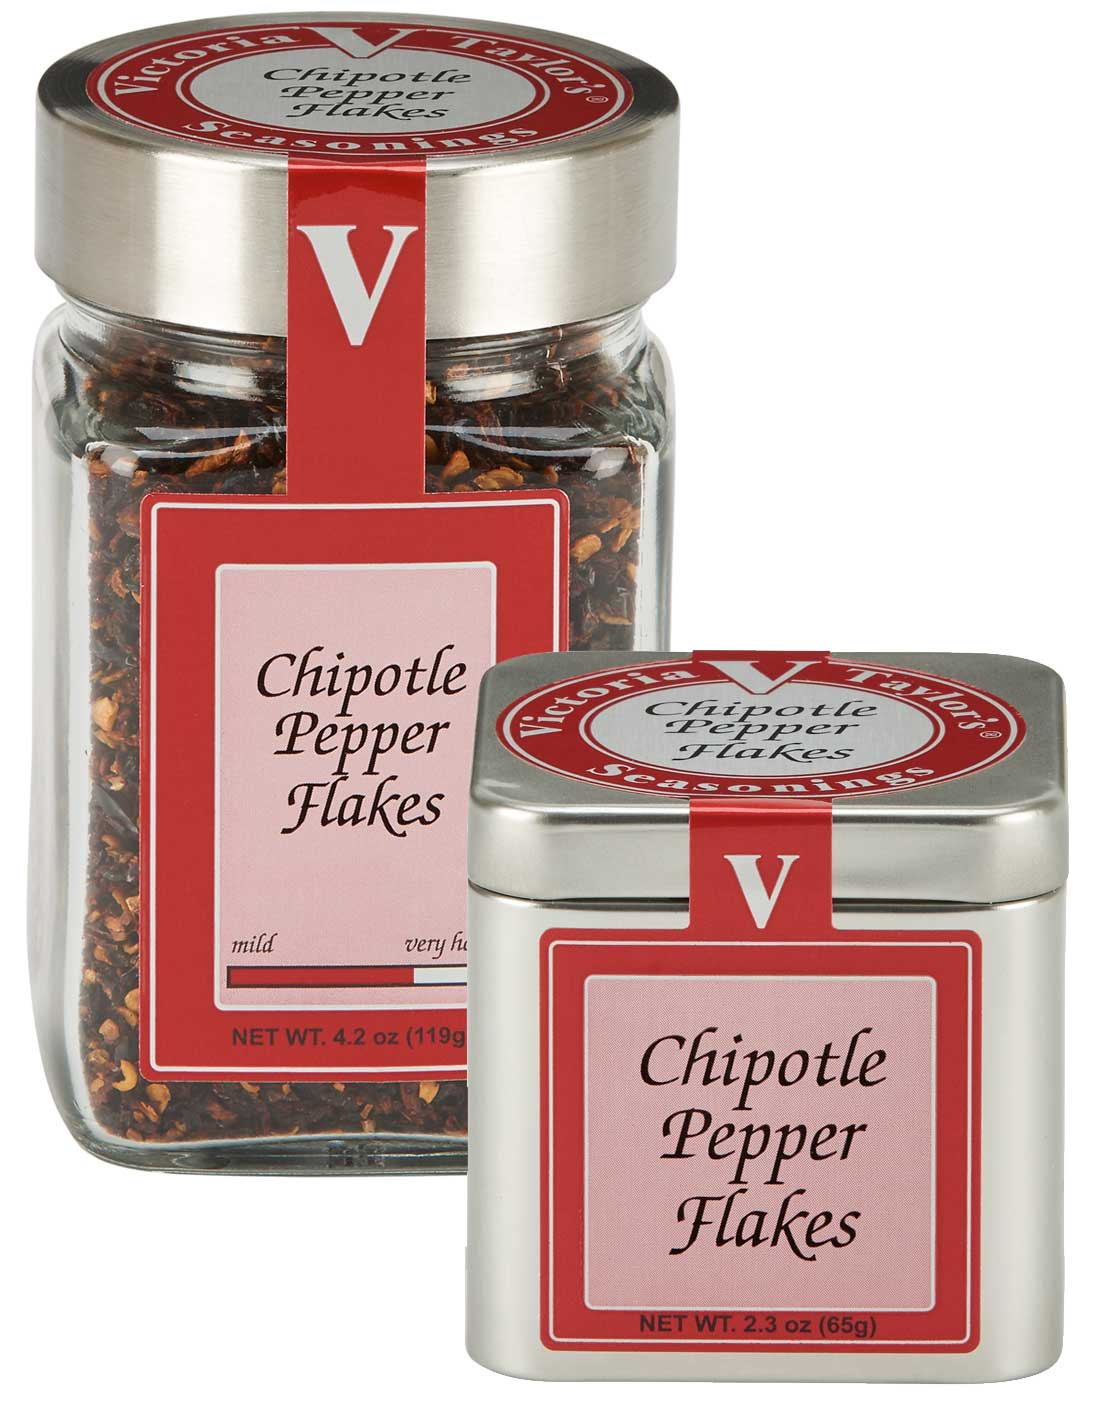 ChipotlePepperFlakeJar_and_Tin_0.jpg